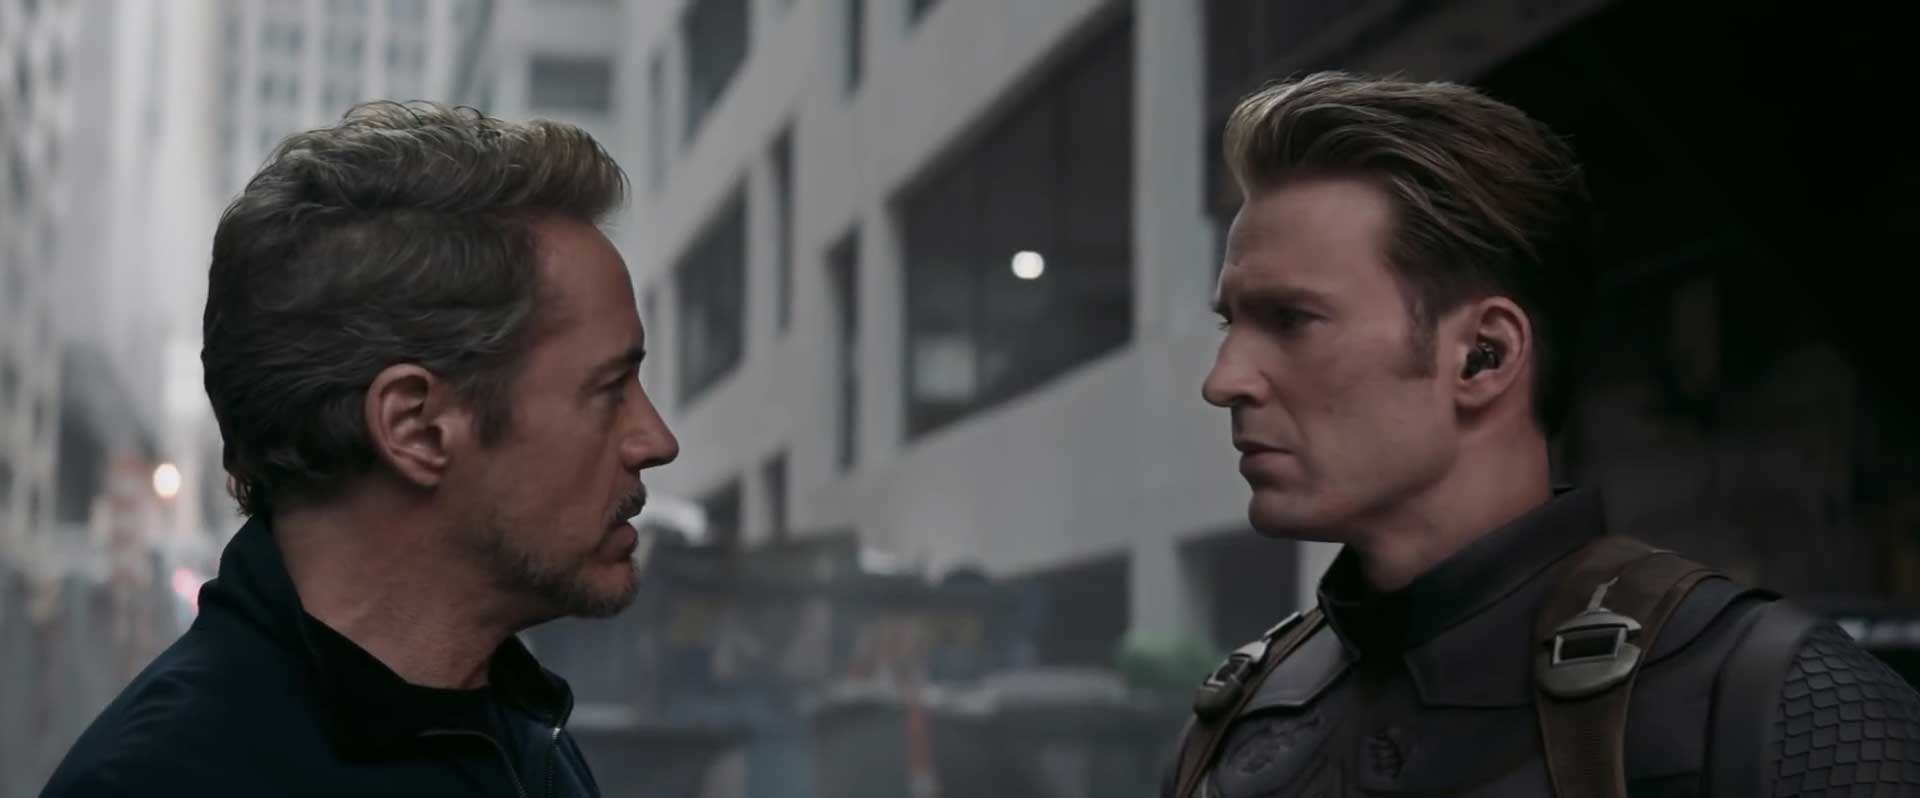 Avengers Endgame Special Look Trailer Breakdown - Tony Stark Steve Rogers Battle of New York